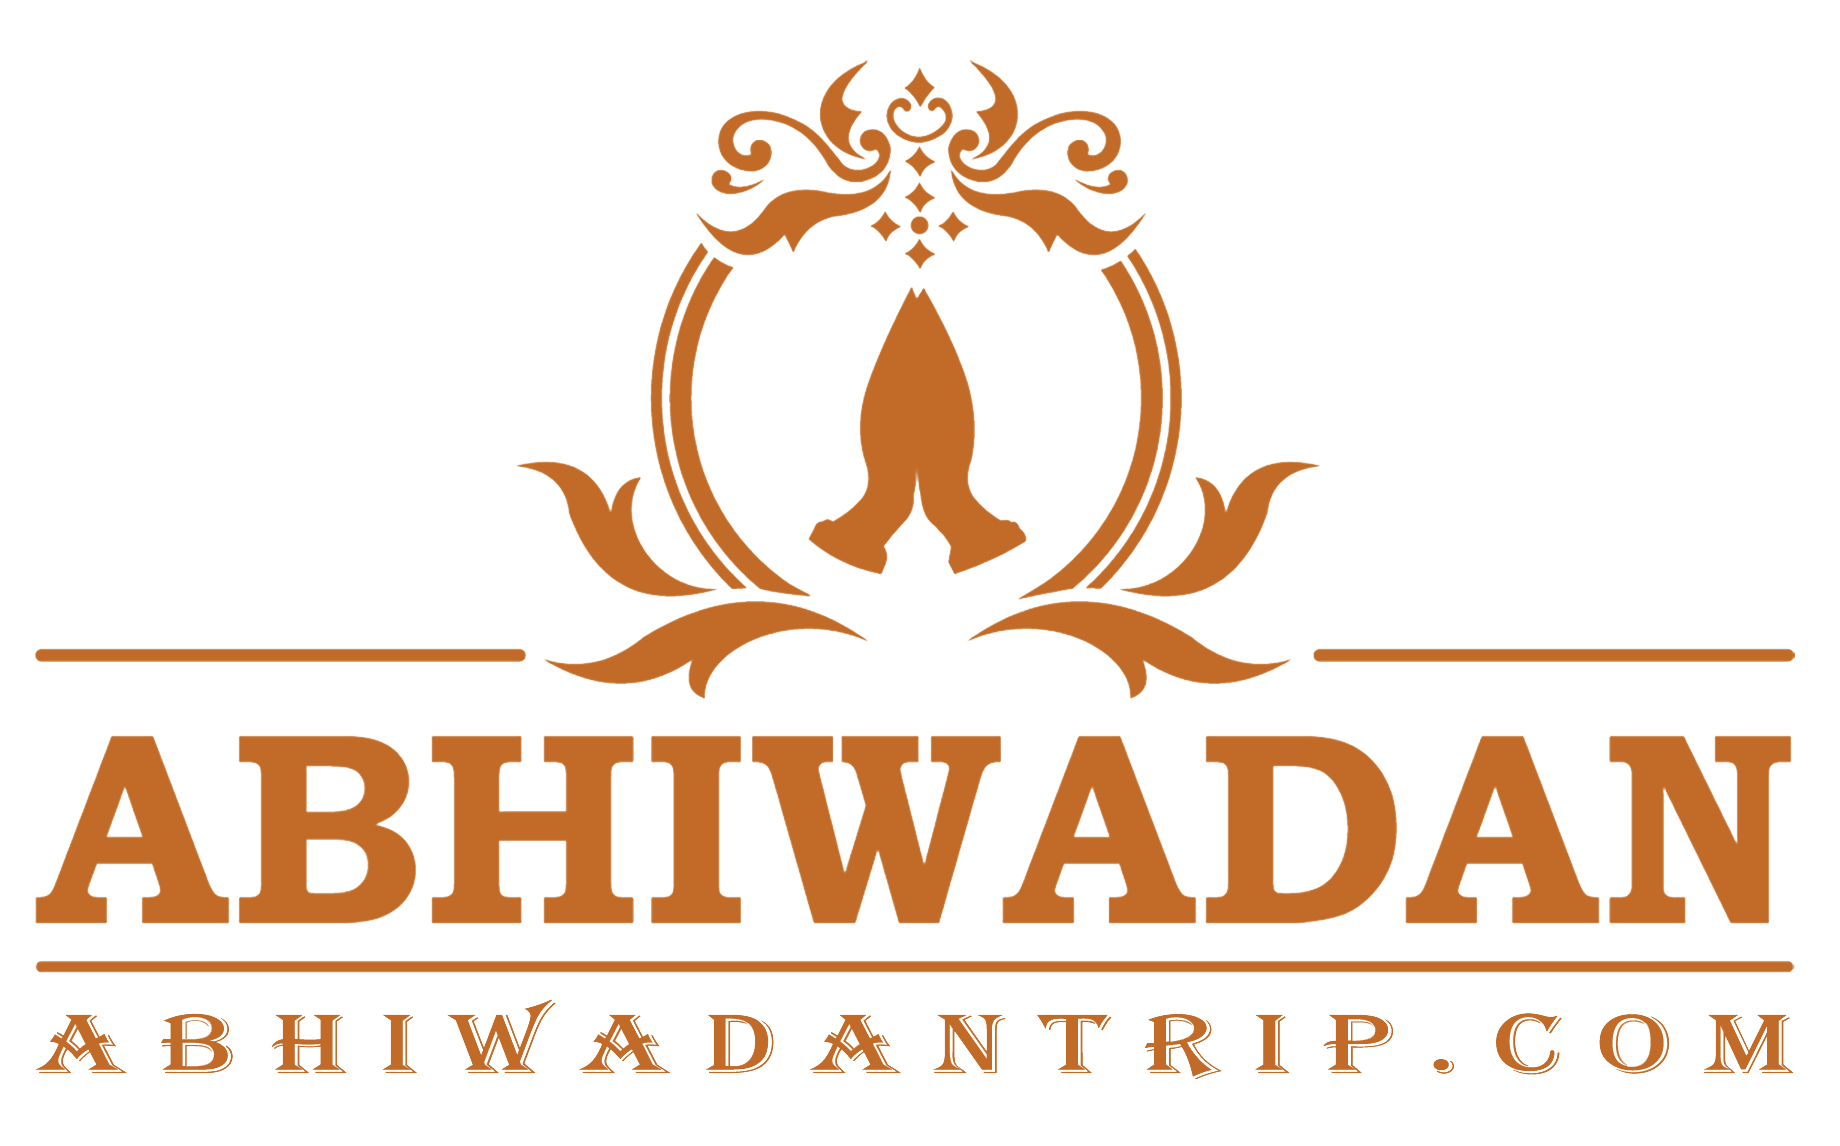 Abhiwadan Expedition Holidays Pvt. Ltd.